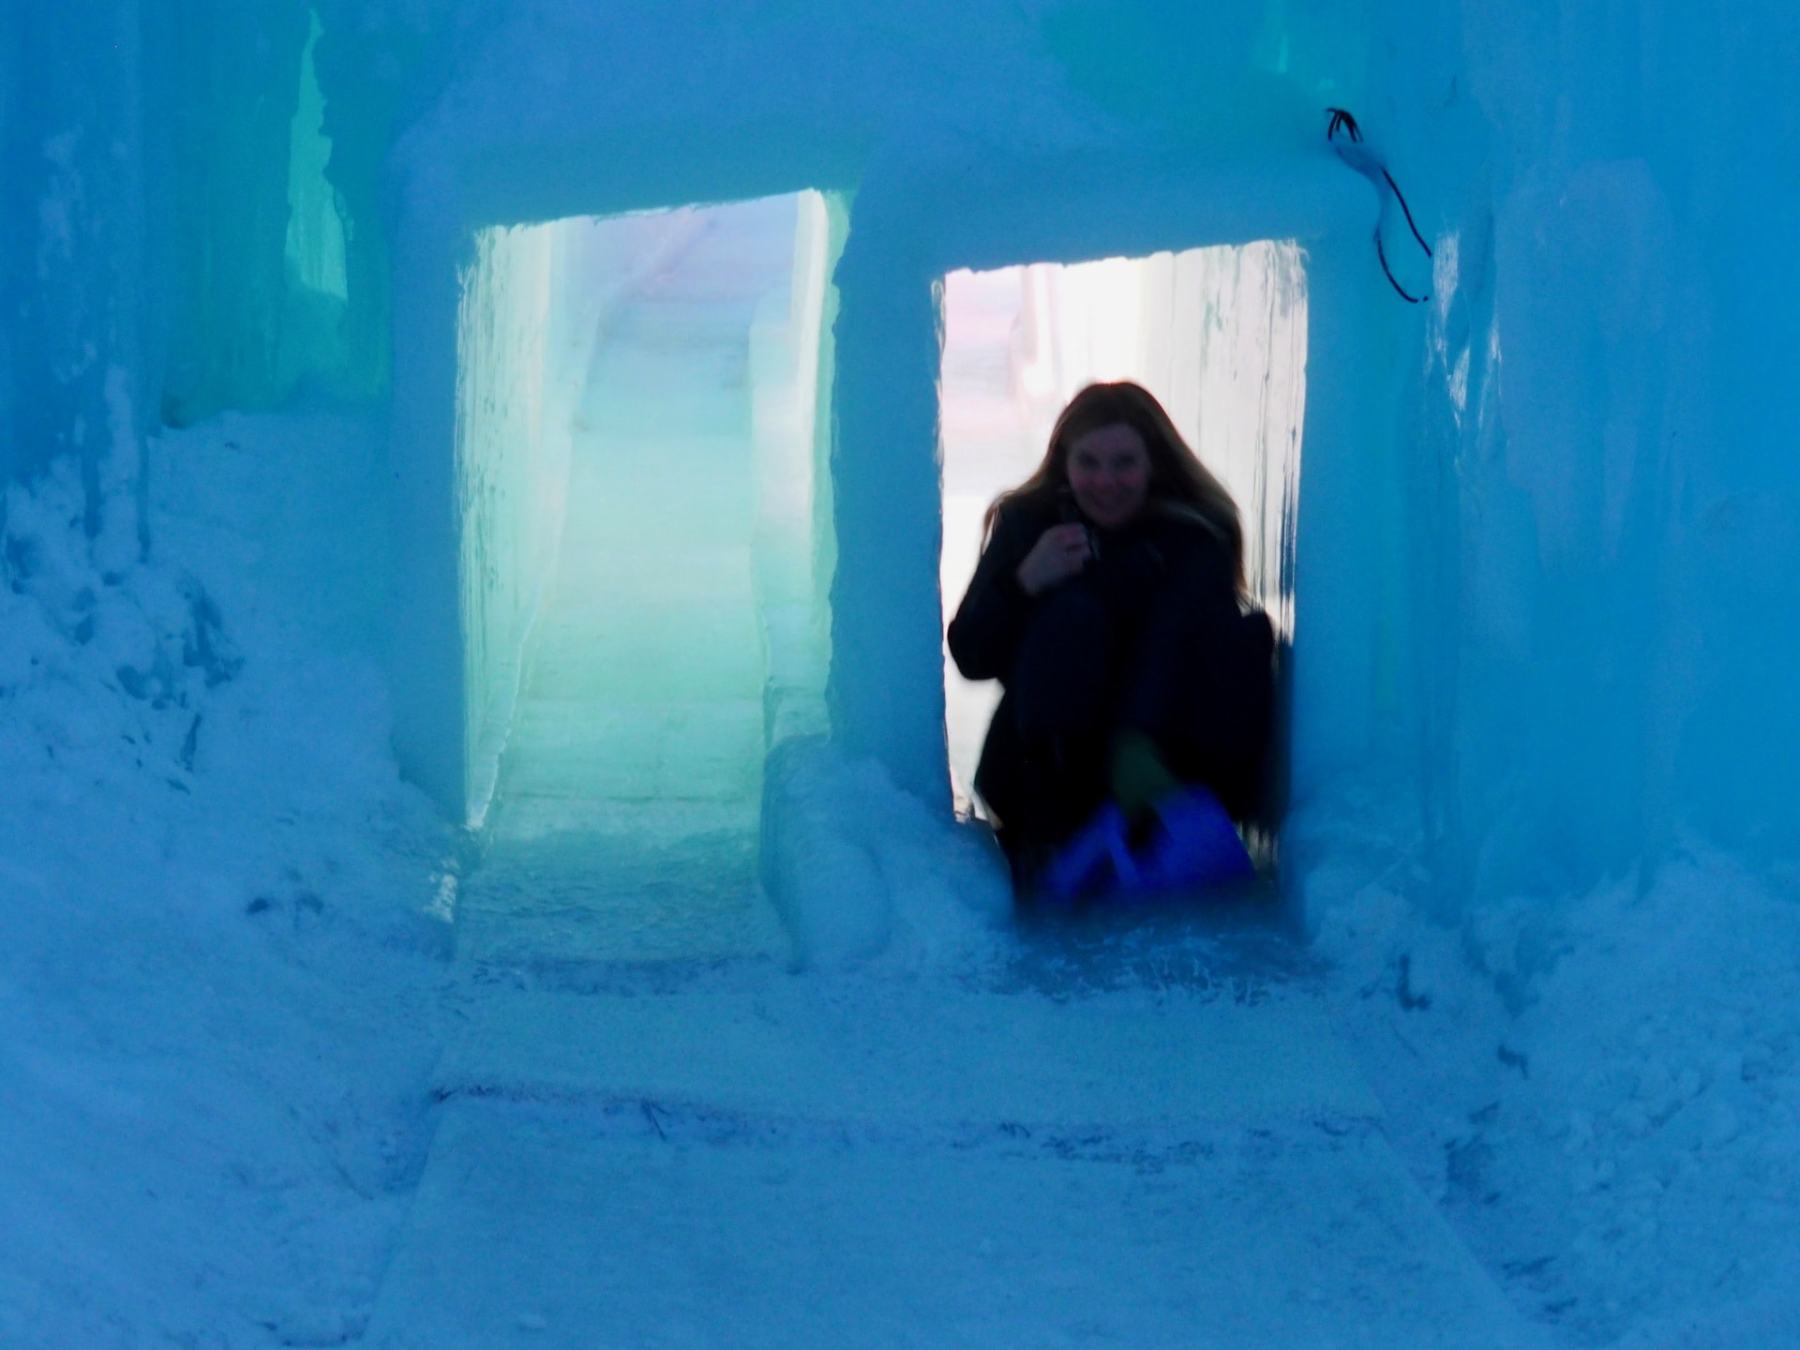 The ice slides are SO MUCH FUN!